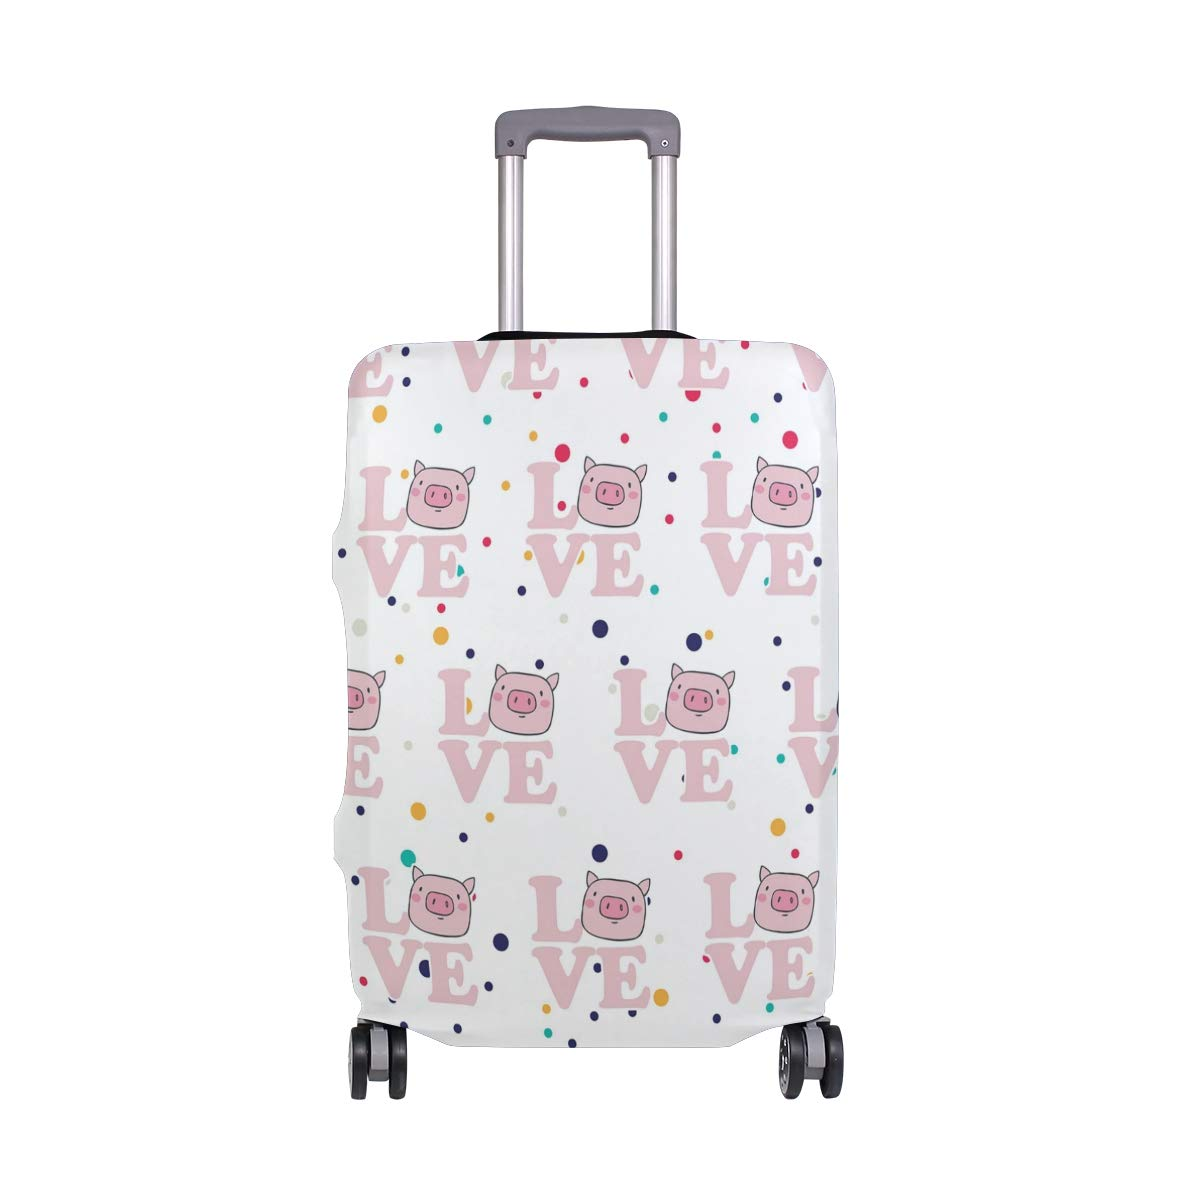 Love Pigs Travel Luggage Cover - Suitcase Protector HLive Spandex Dust Proof Covers with Zipper, Fits 18-32 inch